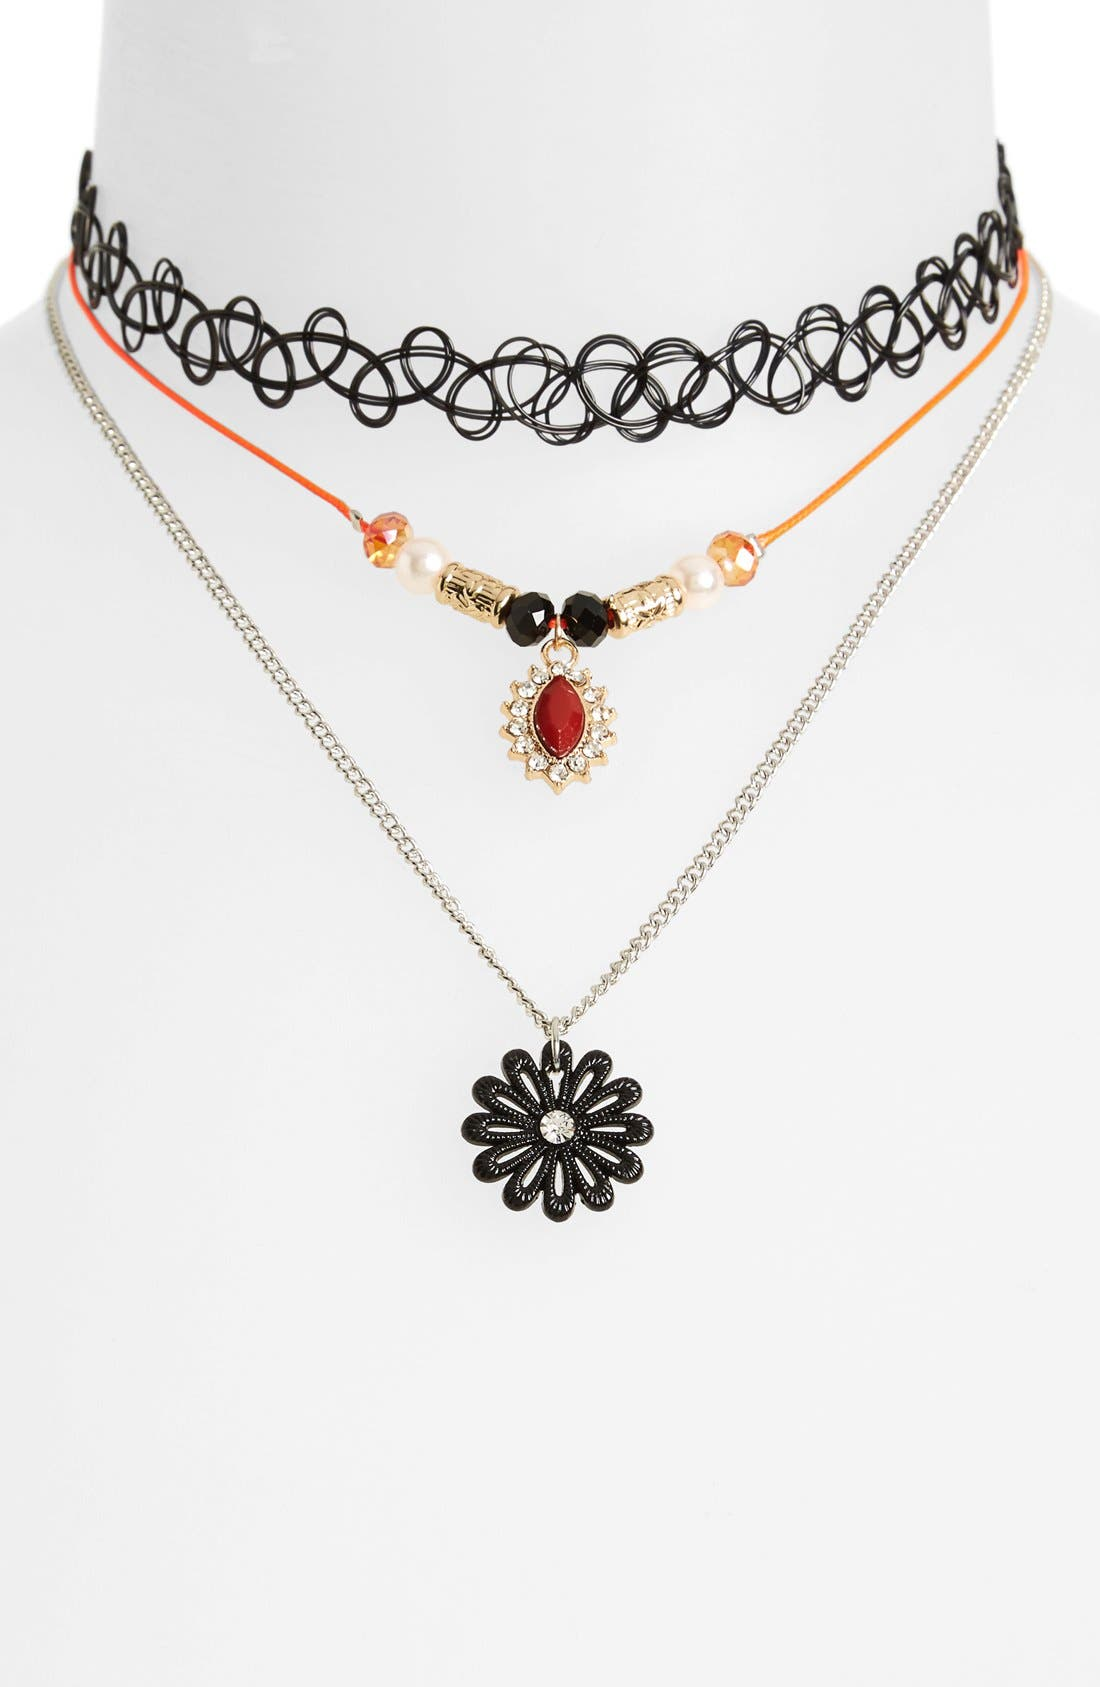 Alternate Image 1 Selected - Topshop Flower Charm Necklace (3-Pack)